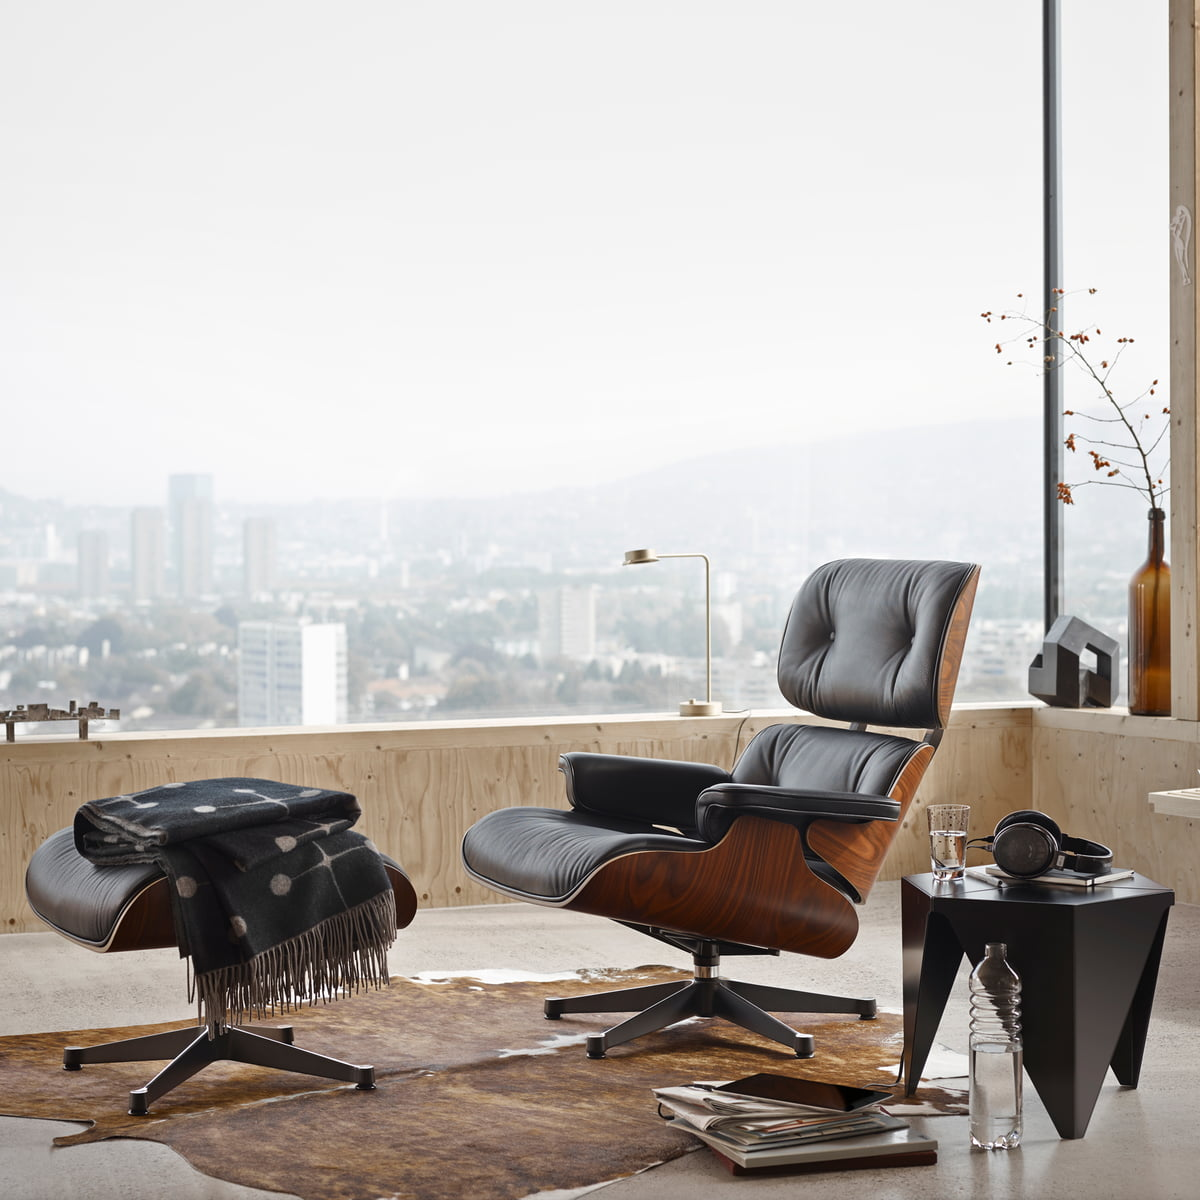 Vitra Lounge Chair Now Available In The Shop - Vitra Lounge Chair Mahagoni